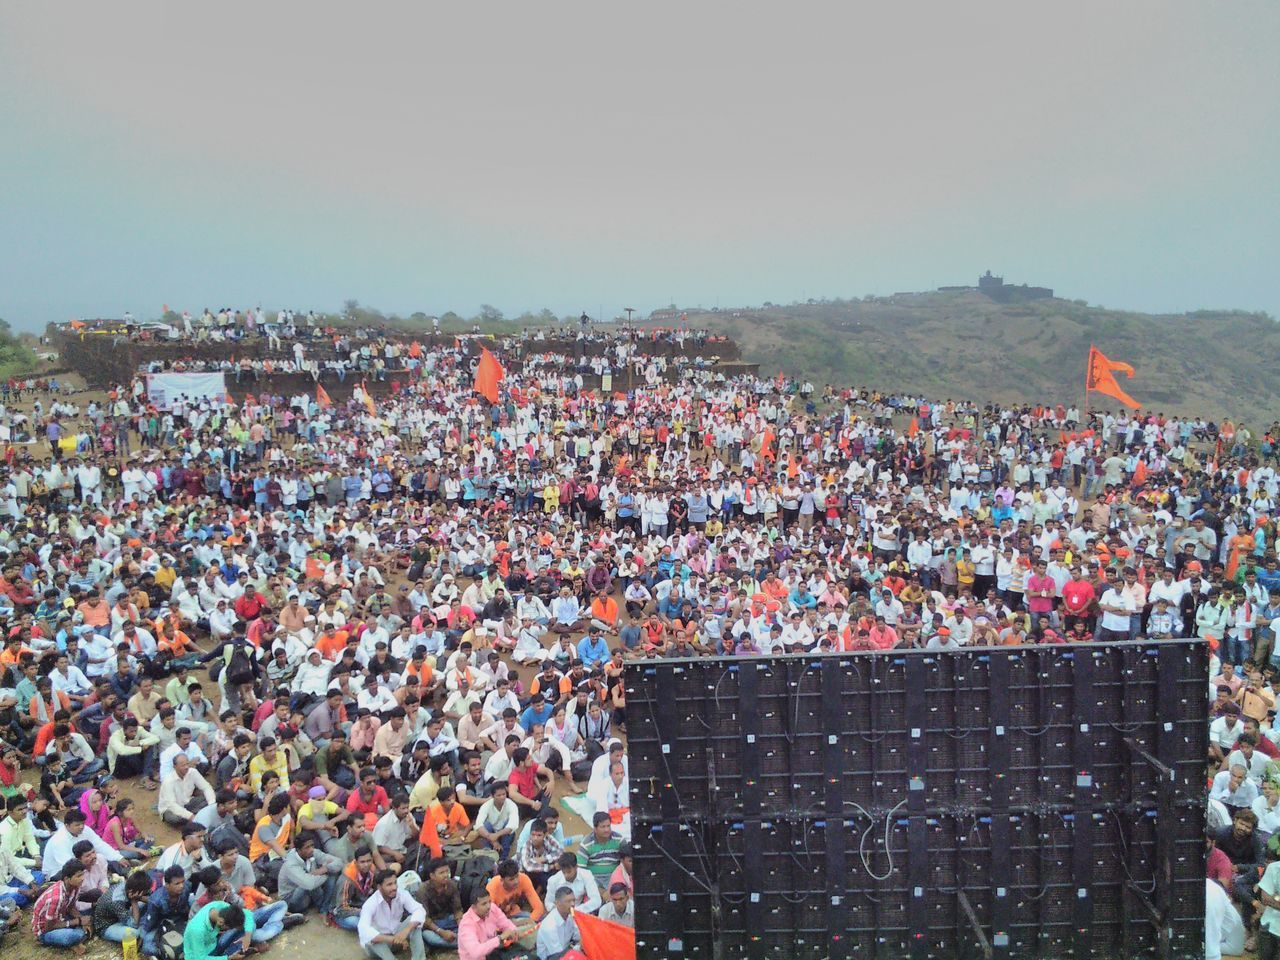 Crowded 6th June Maharashtra Shivaji Maharaj Shivrajyabhishekh Sohala Orange Flags Lifestyles Public Gathering Gathering Gather & Celebrate